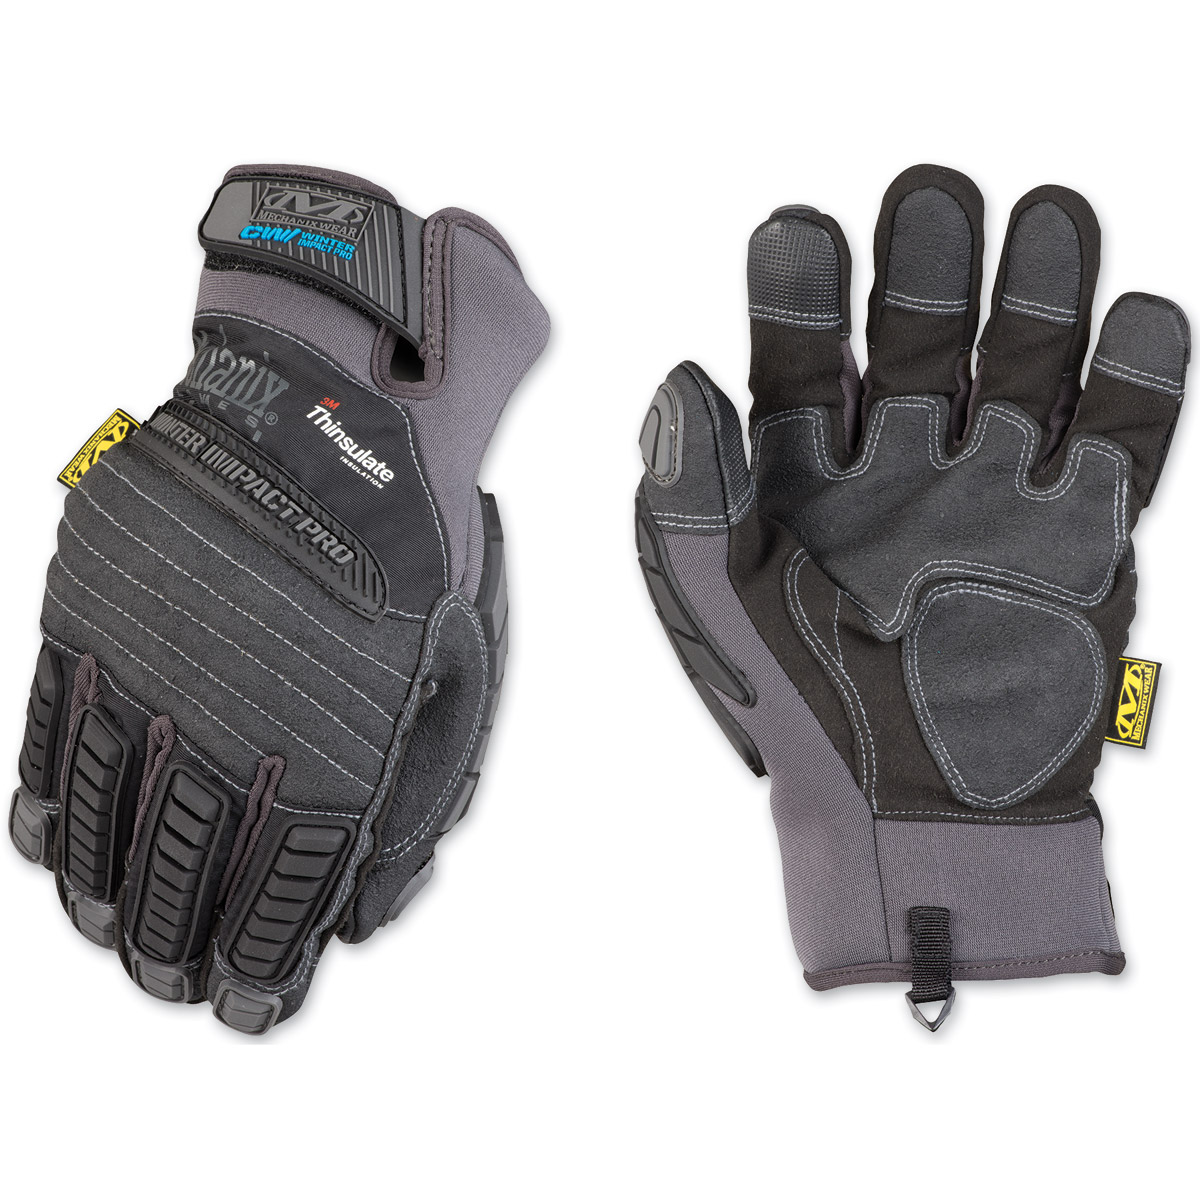 Mechanix Wear Men's Winter Impact Pro Gloves